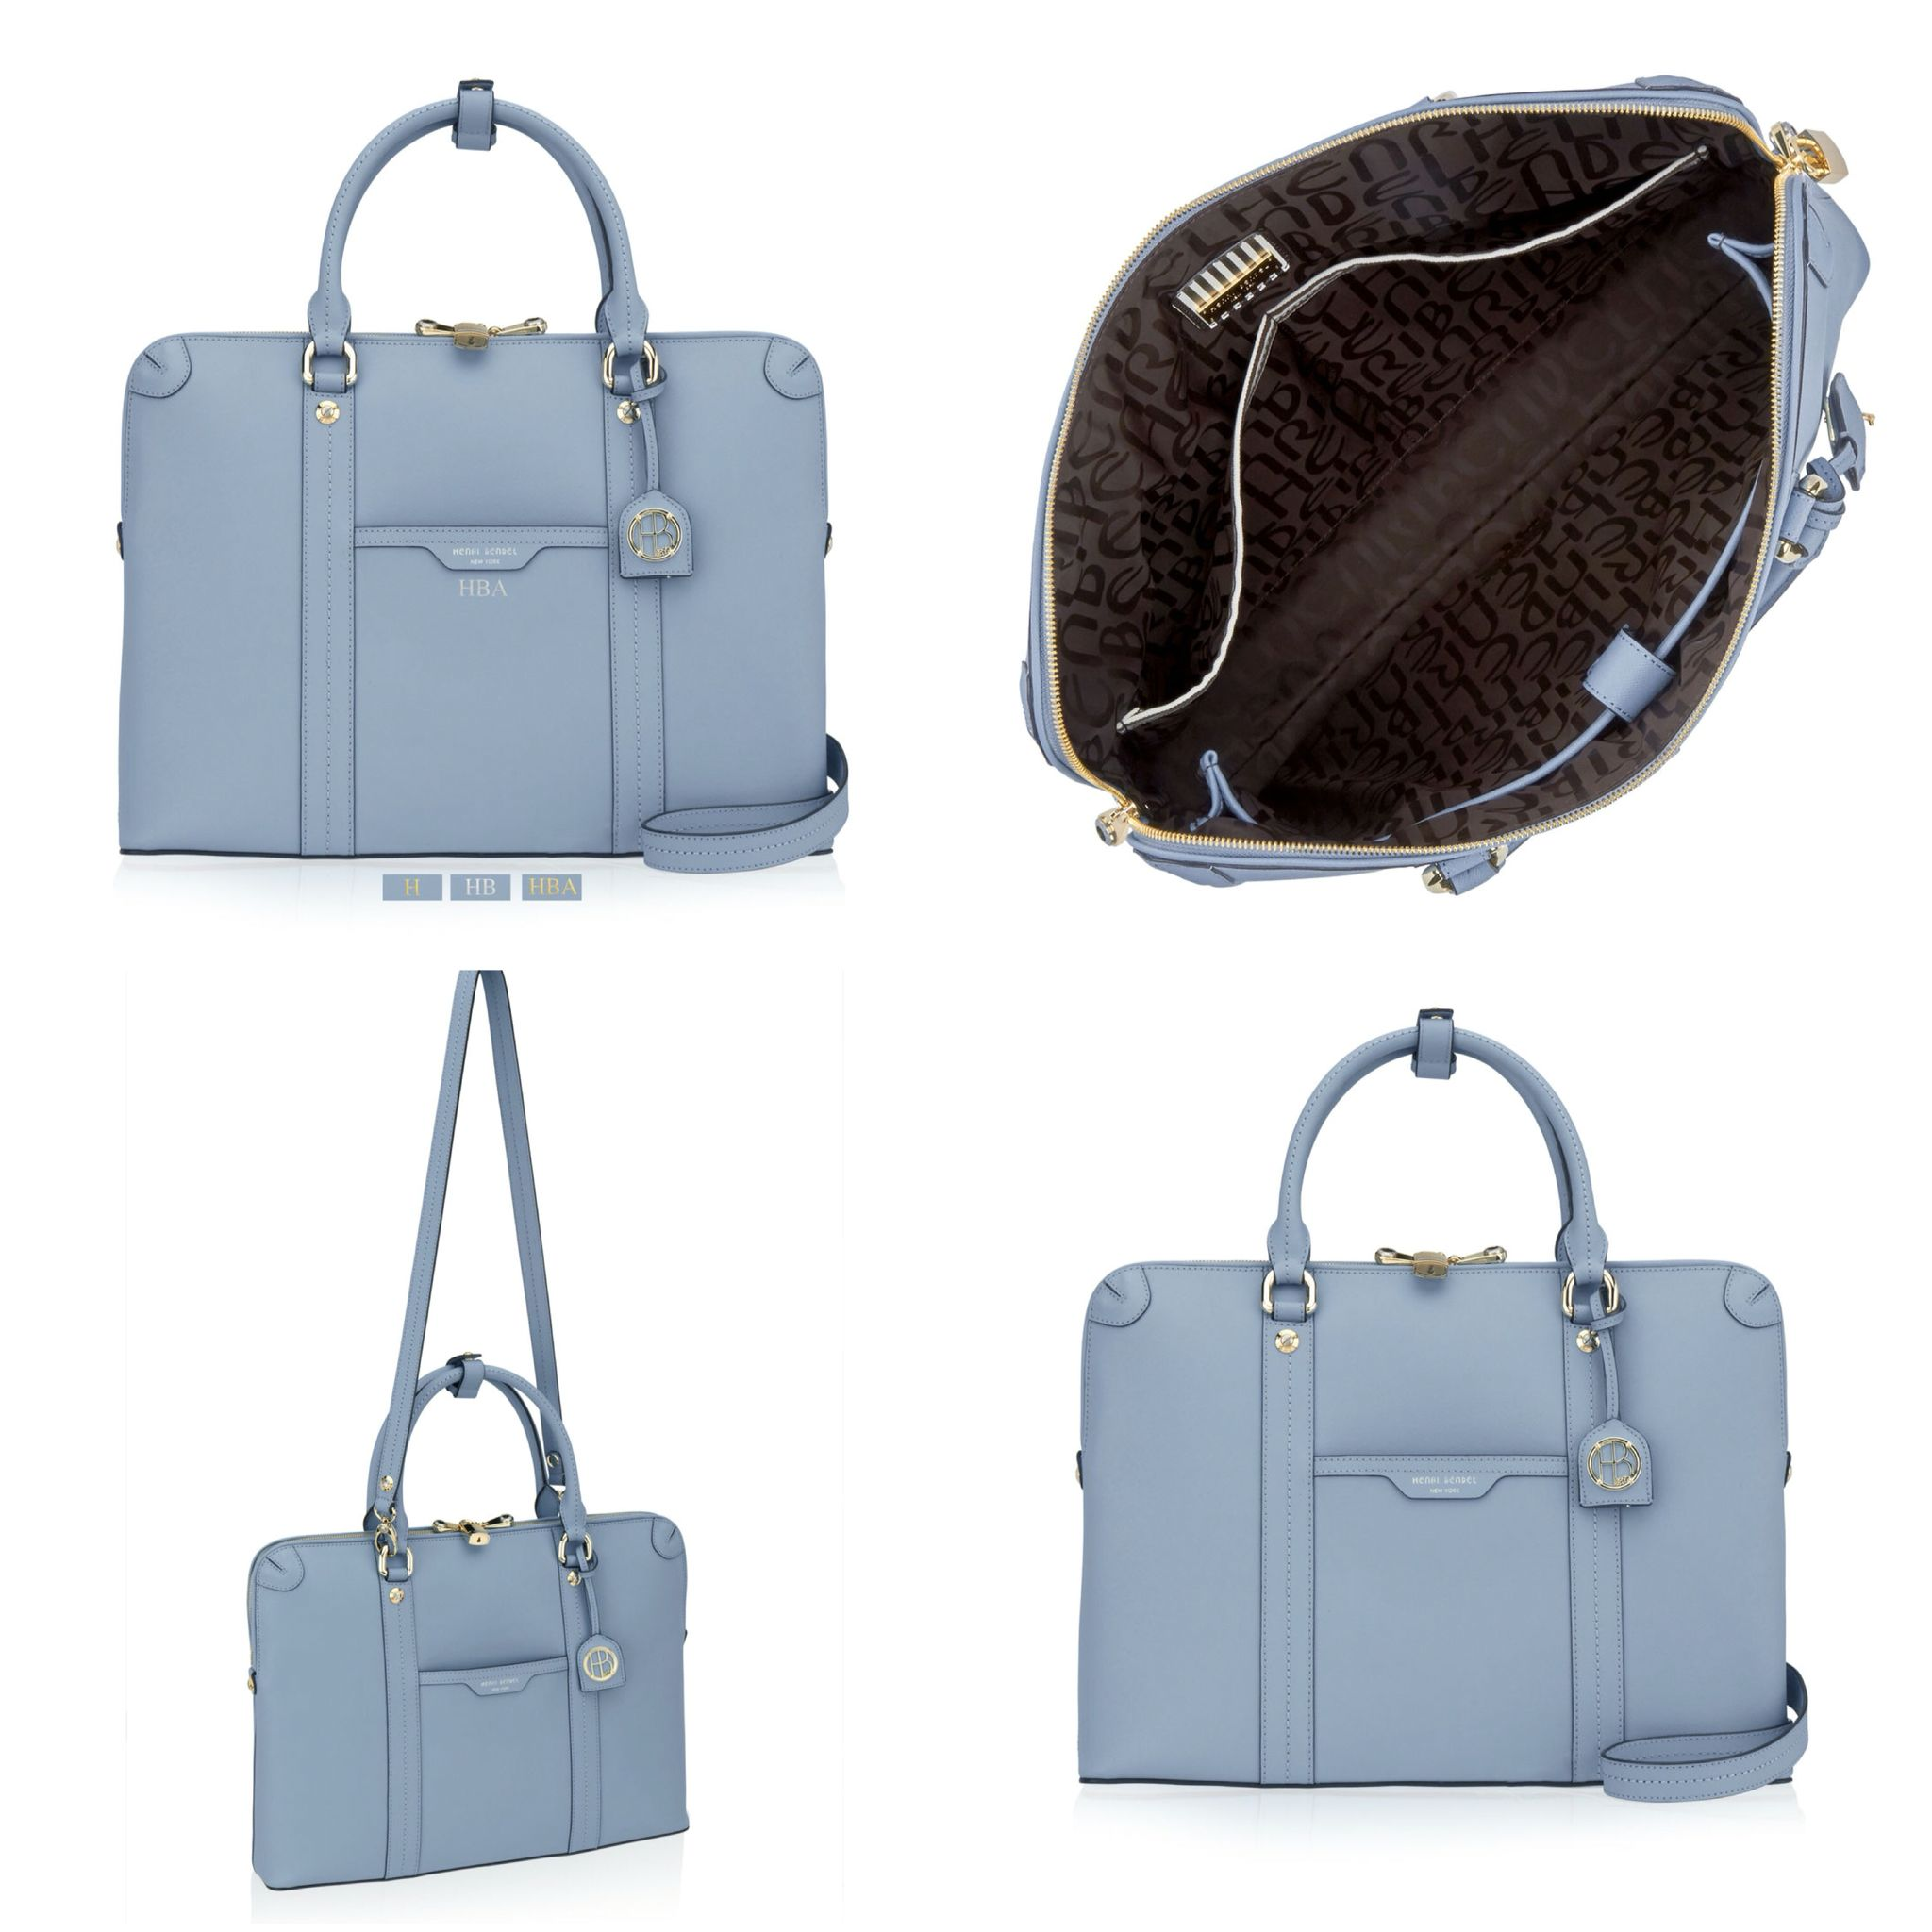 070d72a4b1d1 Henri Bendel - West 57th Briefcase bag. Perfect structured elegant briefcase  for the corporate women <3